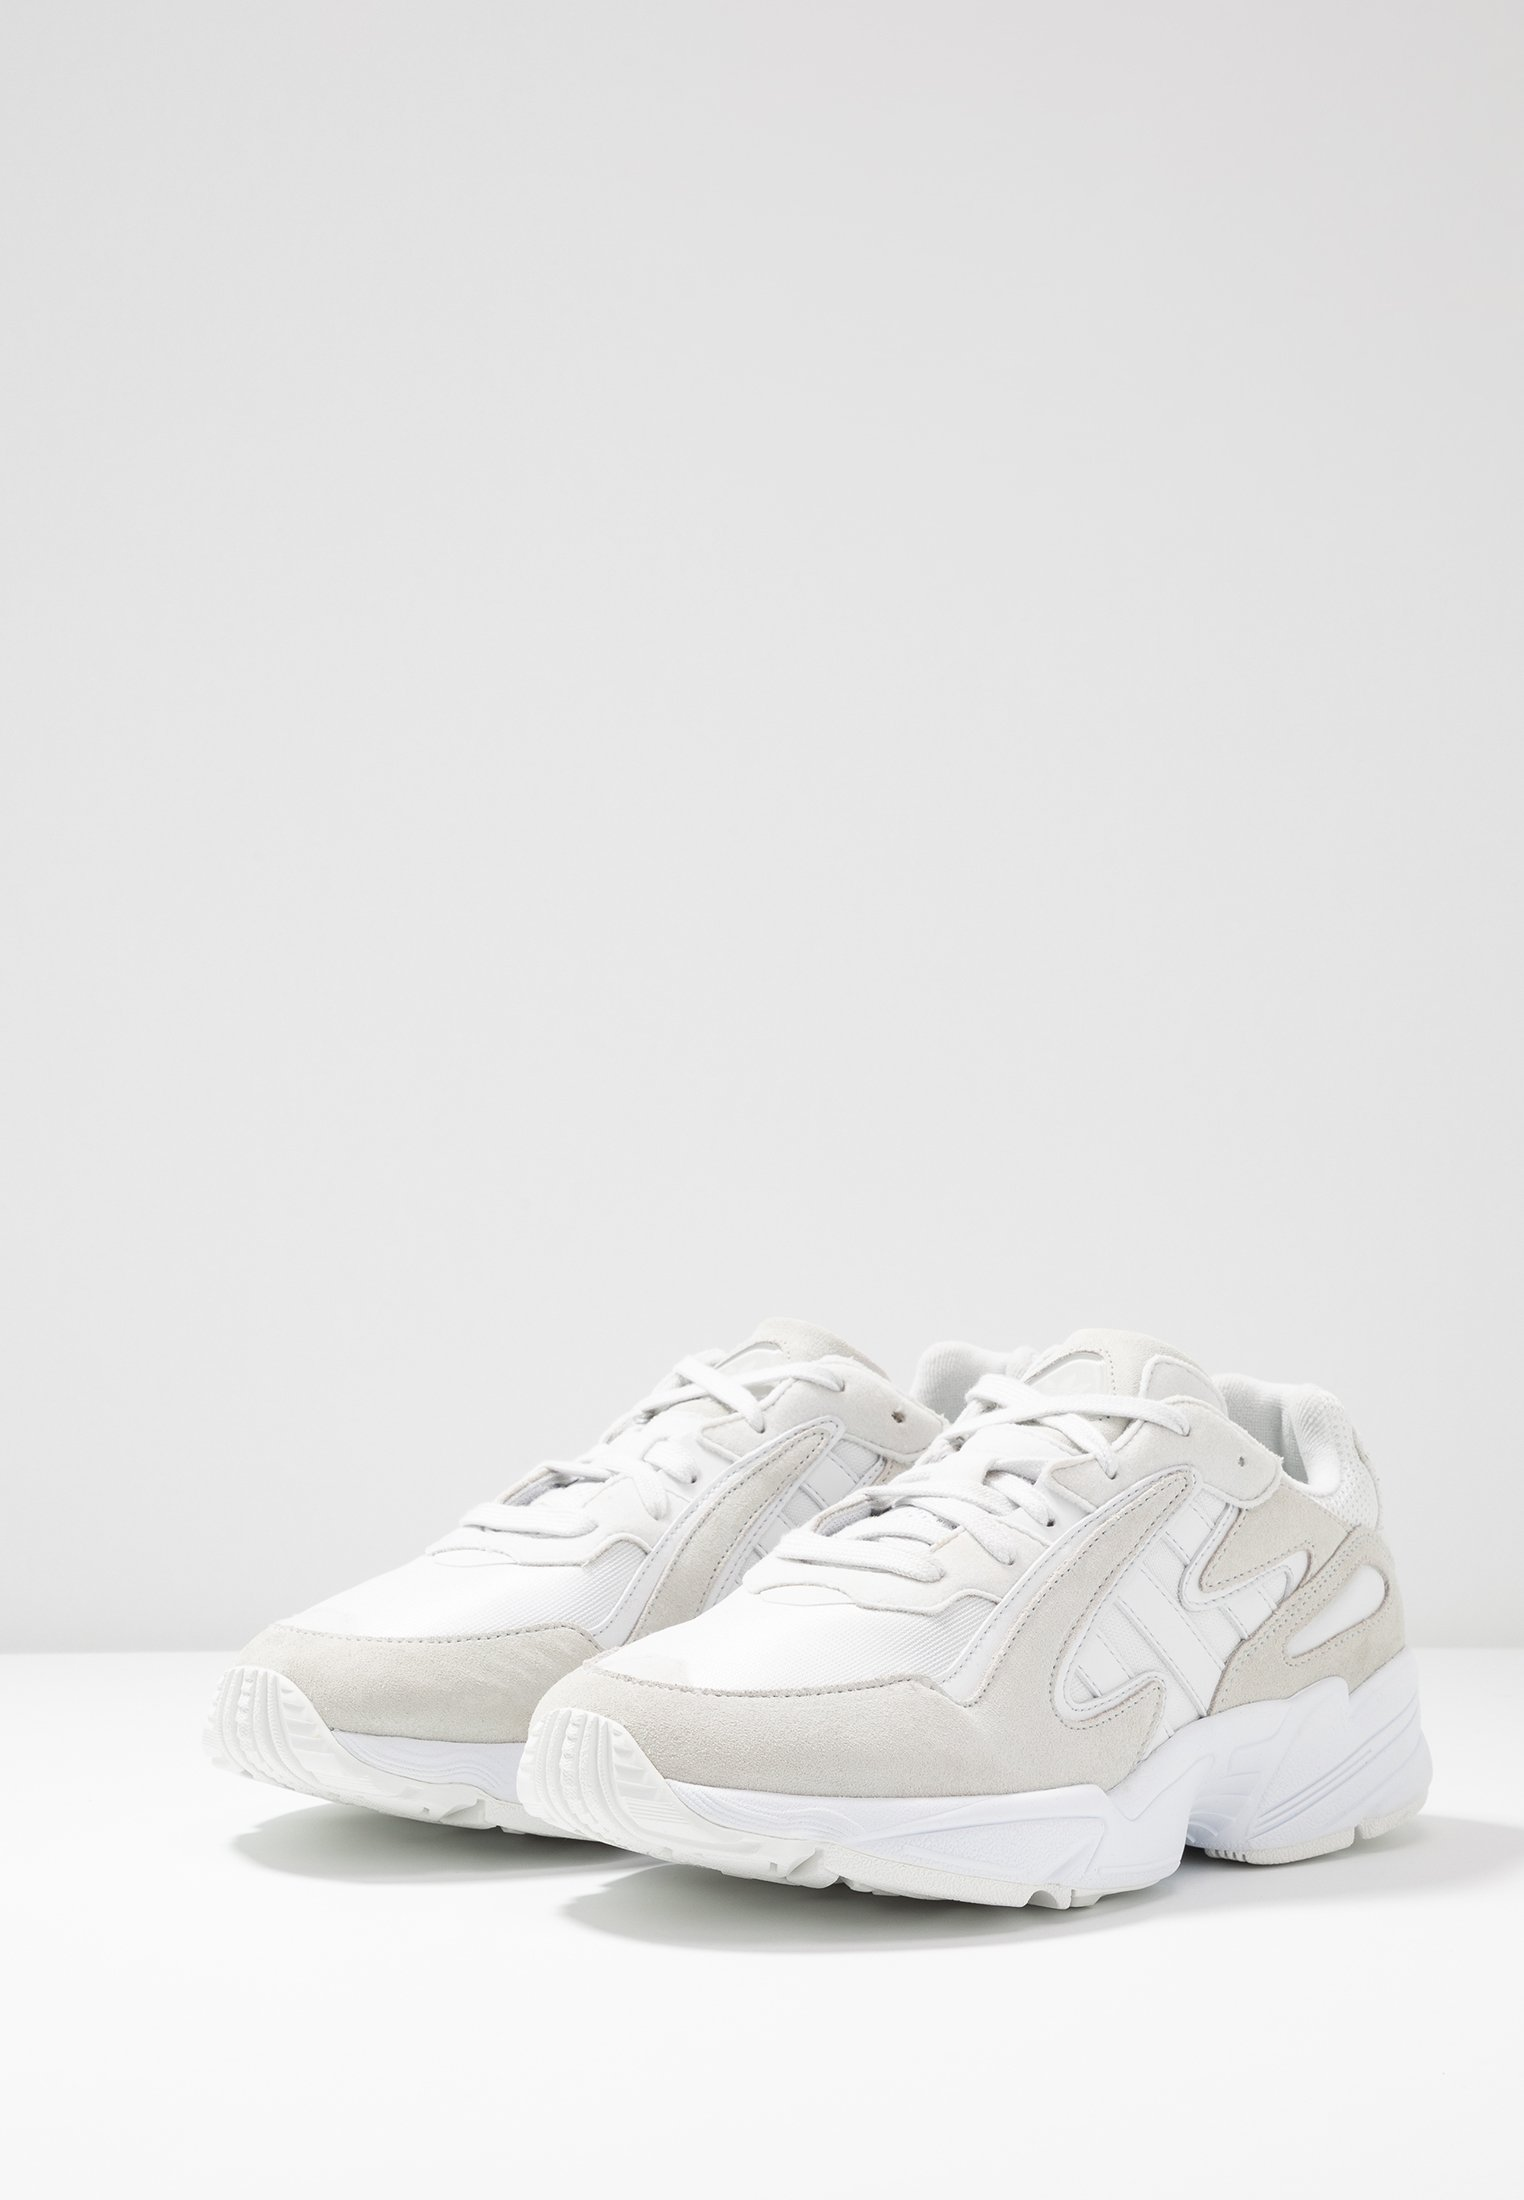 White Adidas 96 Basses White footwear Yung ChasmBaskets Crystal Originals 0OkXnwP8